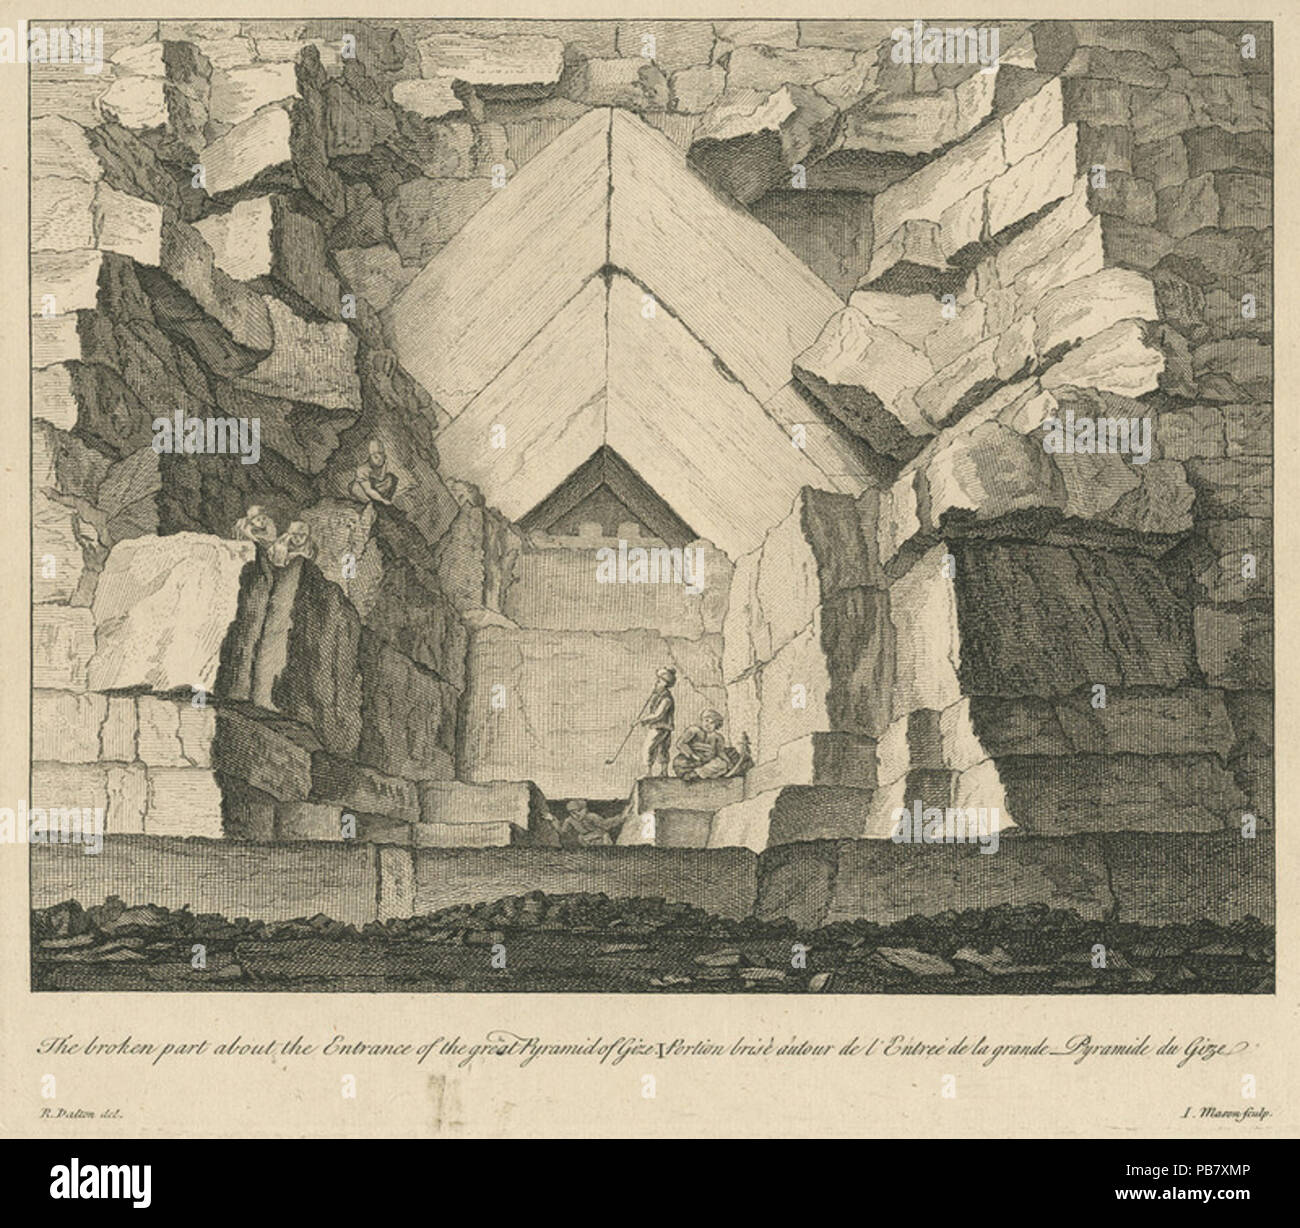 1619 The broken part about the Entrance of the great Pyramids of Gize -  Dalton Richard - 1751